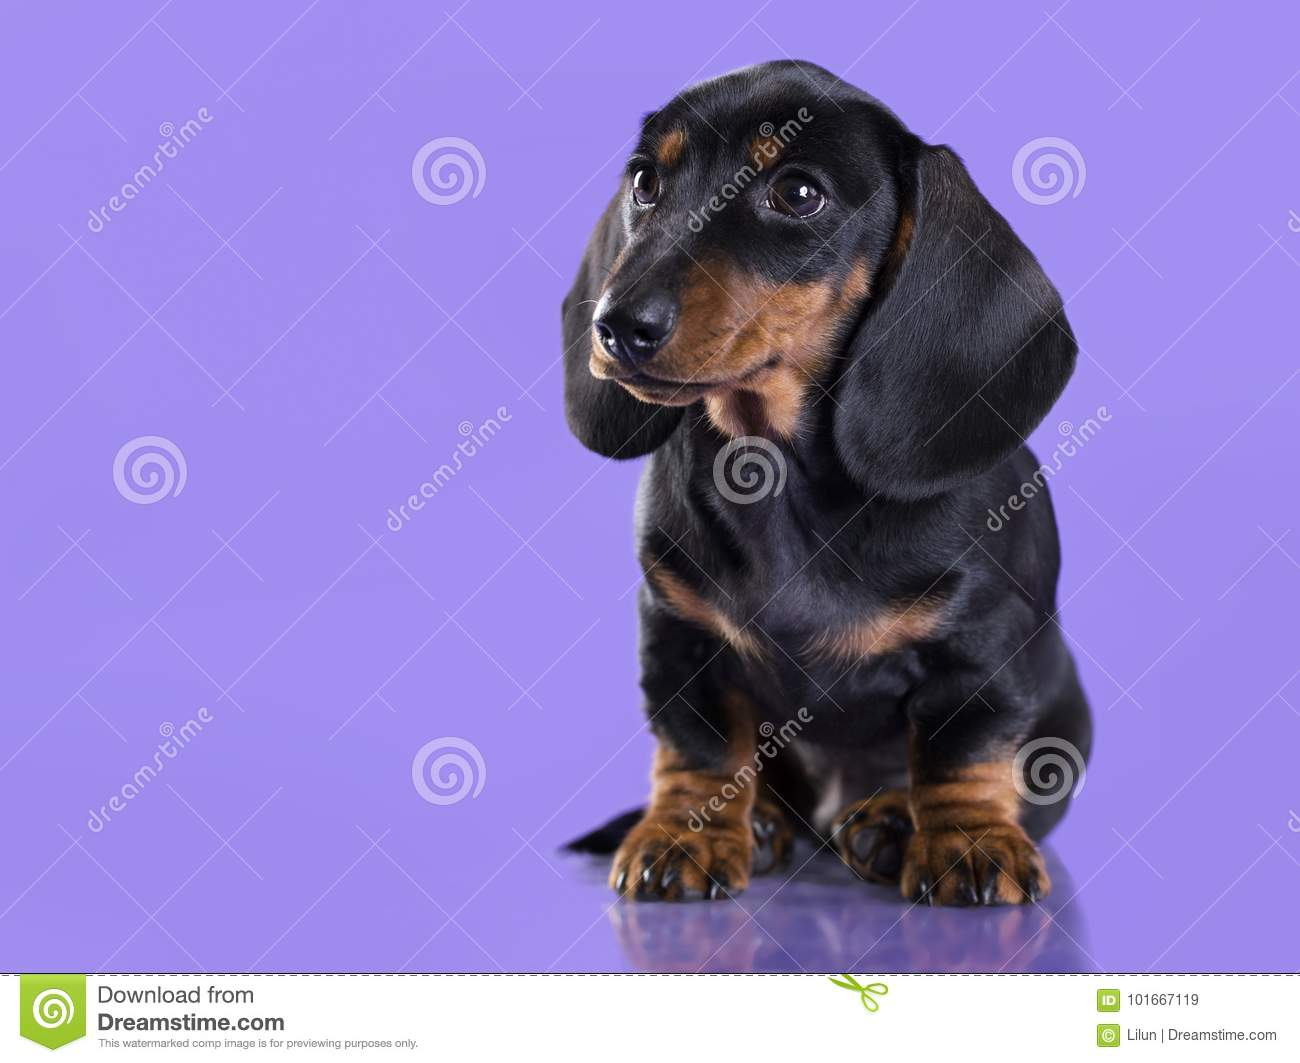 Dachshund Puppy The Black Age 2 Months Stock Image Image Of Pedigree Brown 101667119